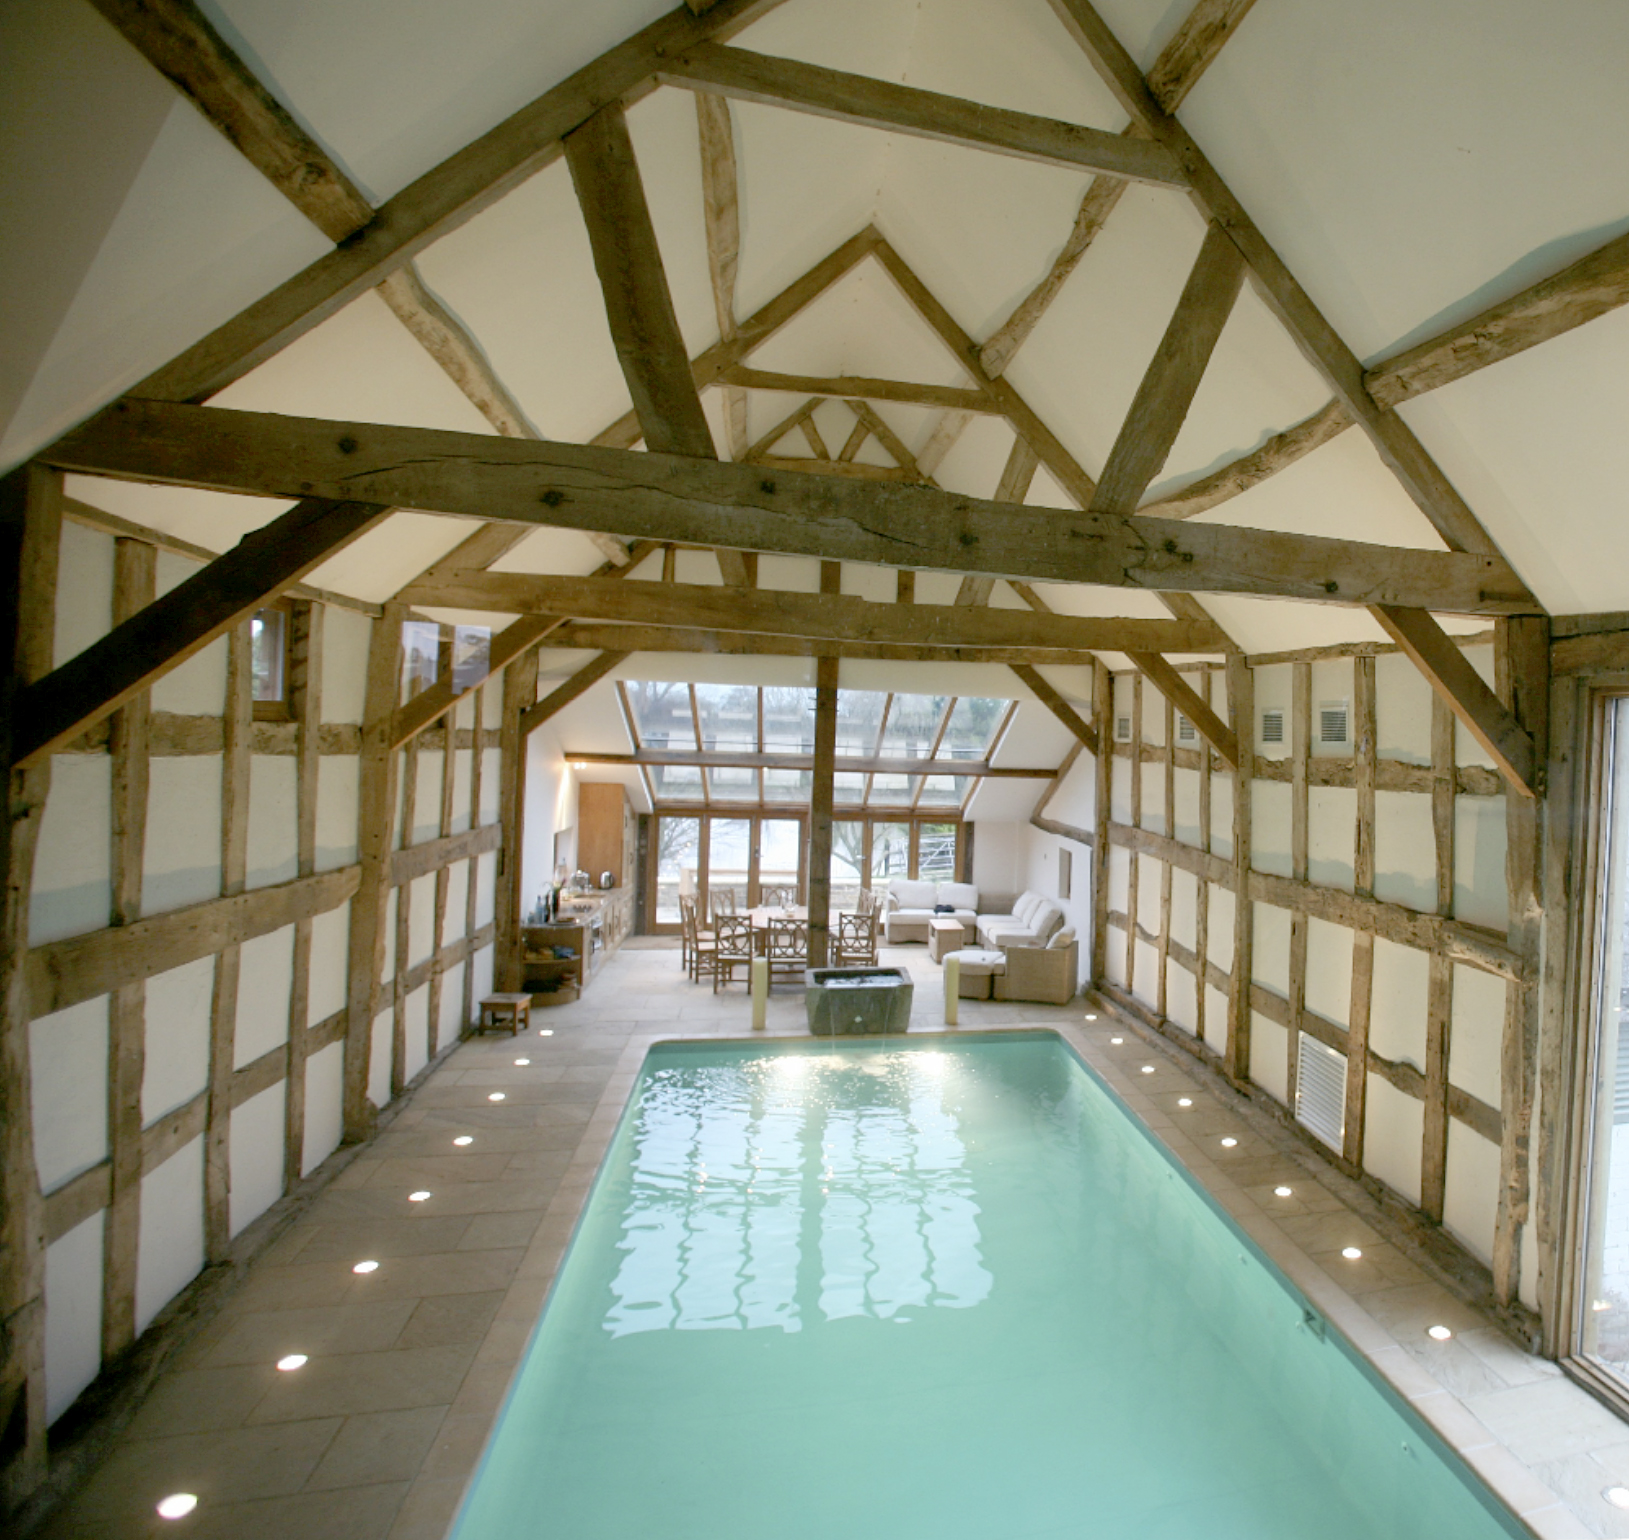 Monnington Court barn conversion swimming pool herefordshire builder groundworks.jpg